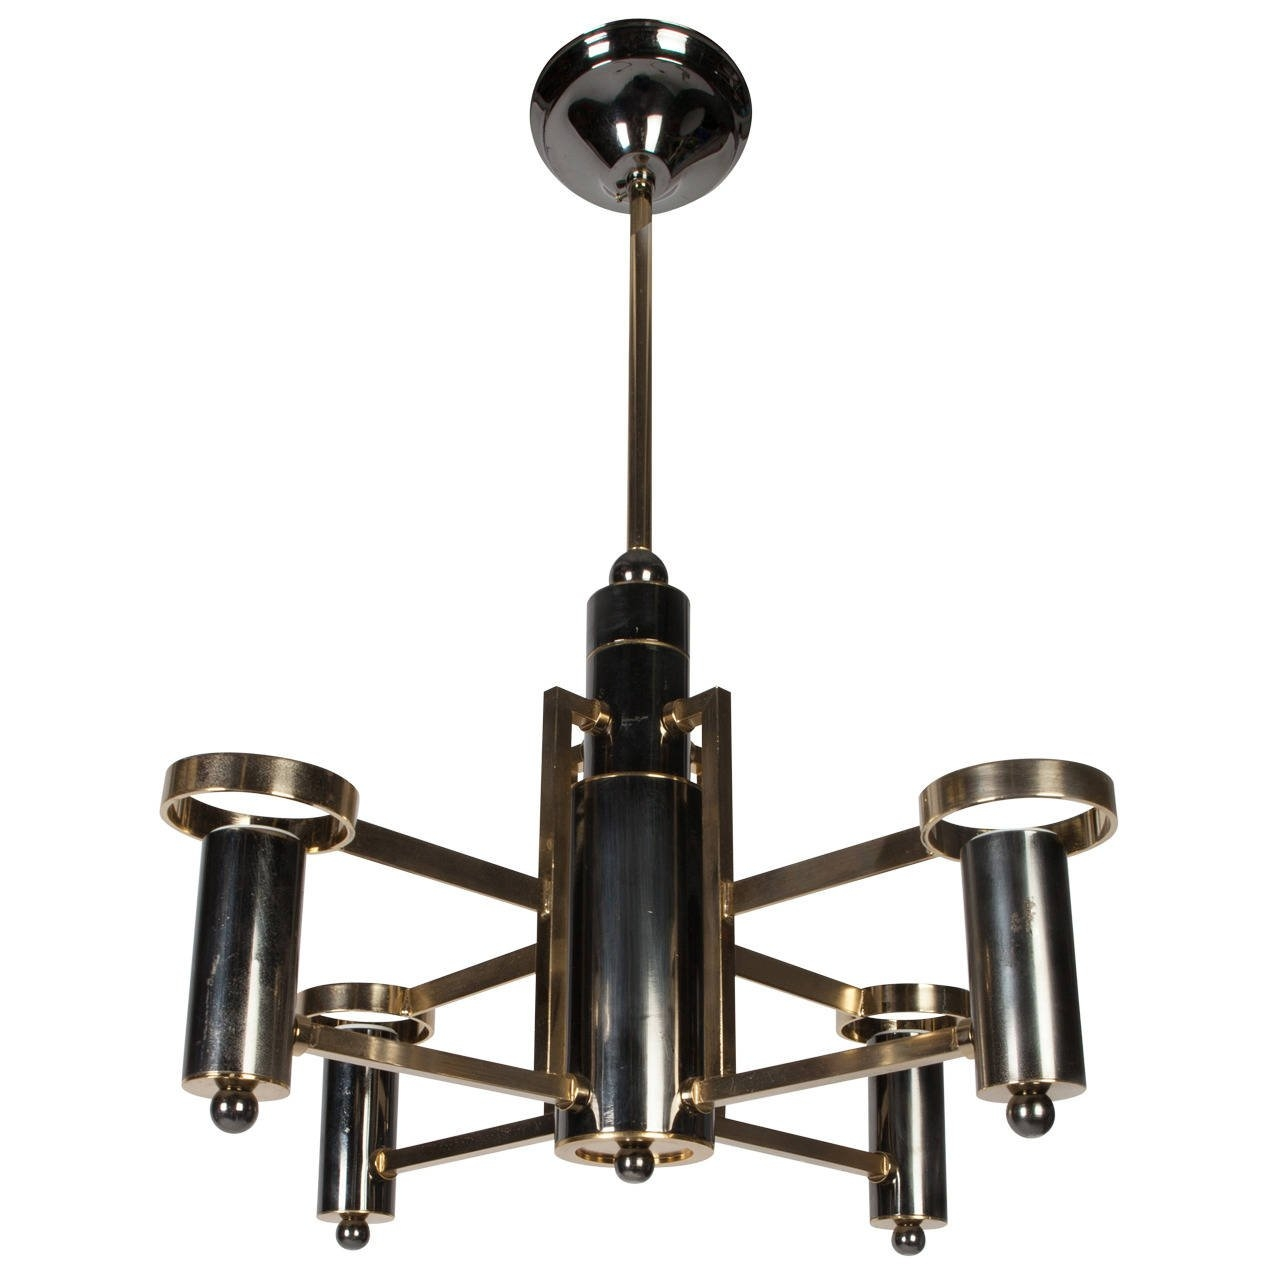 Vintage Chrome Chandelier For Sale At 1stdibs With Regard To Chandelier Chrome (Image 15 of 15)